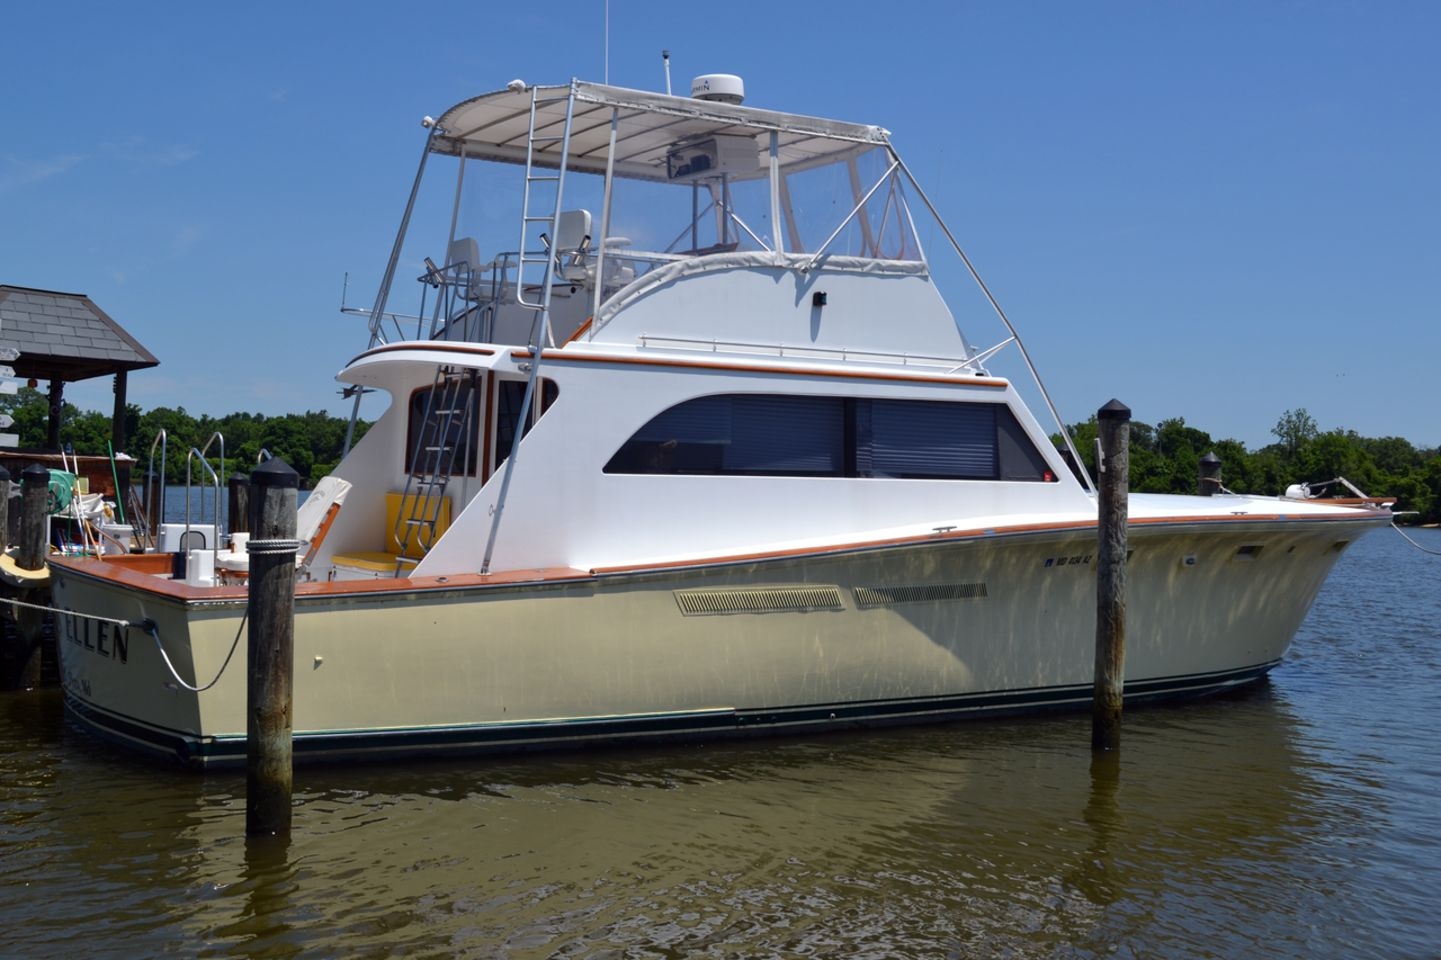 1972 used egg harbor 46 sportfisherman convertible fishing for Used fishing boats for sale in md